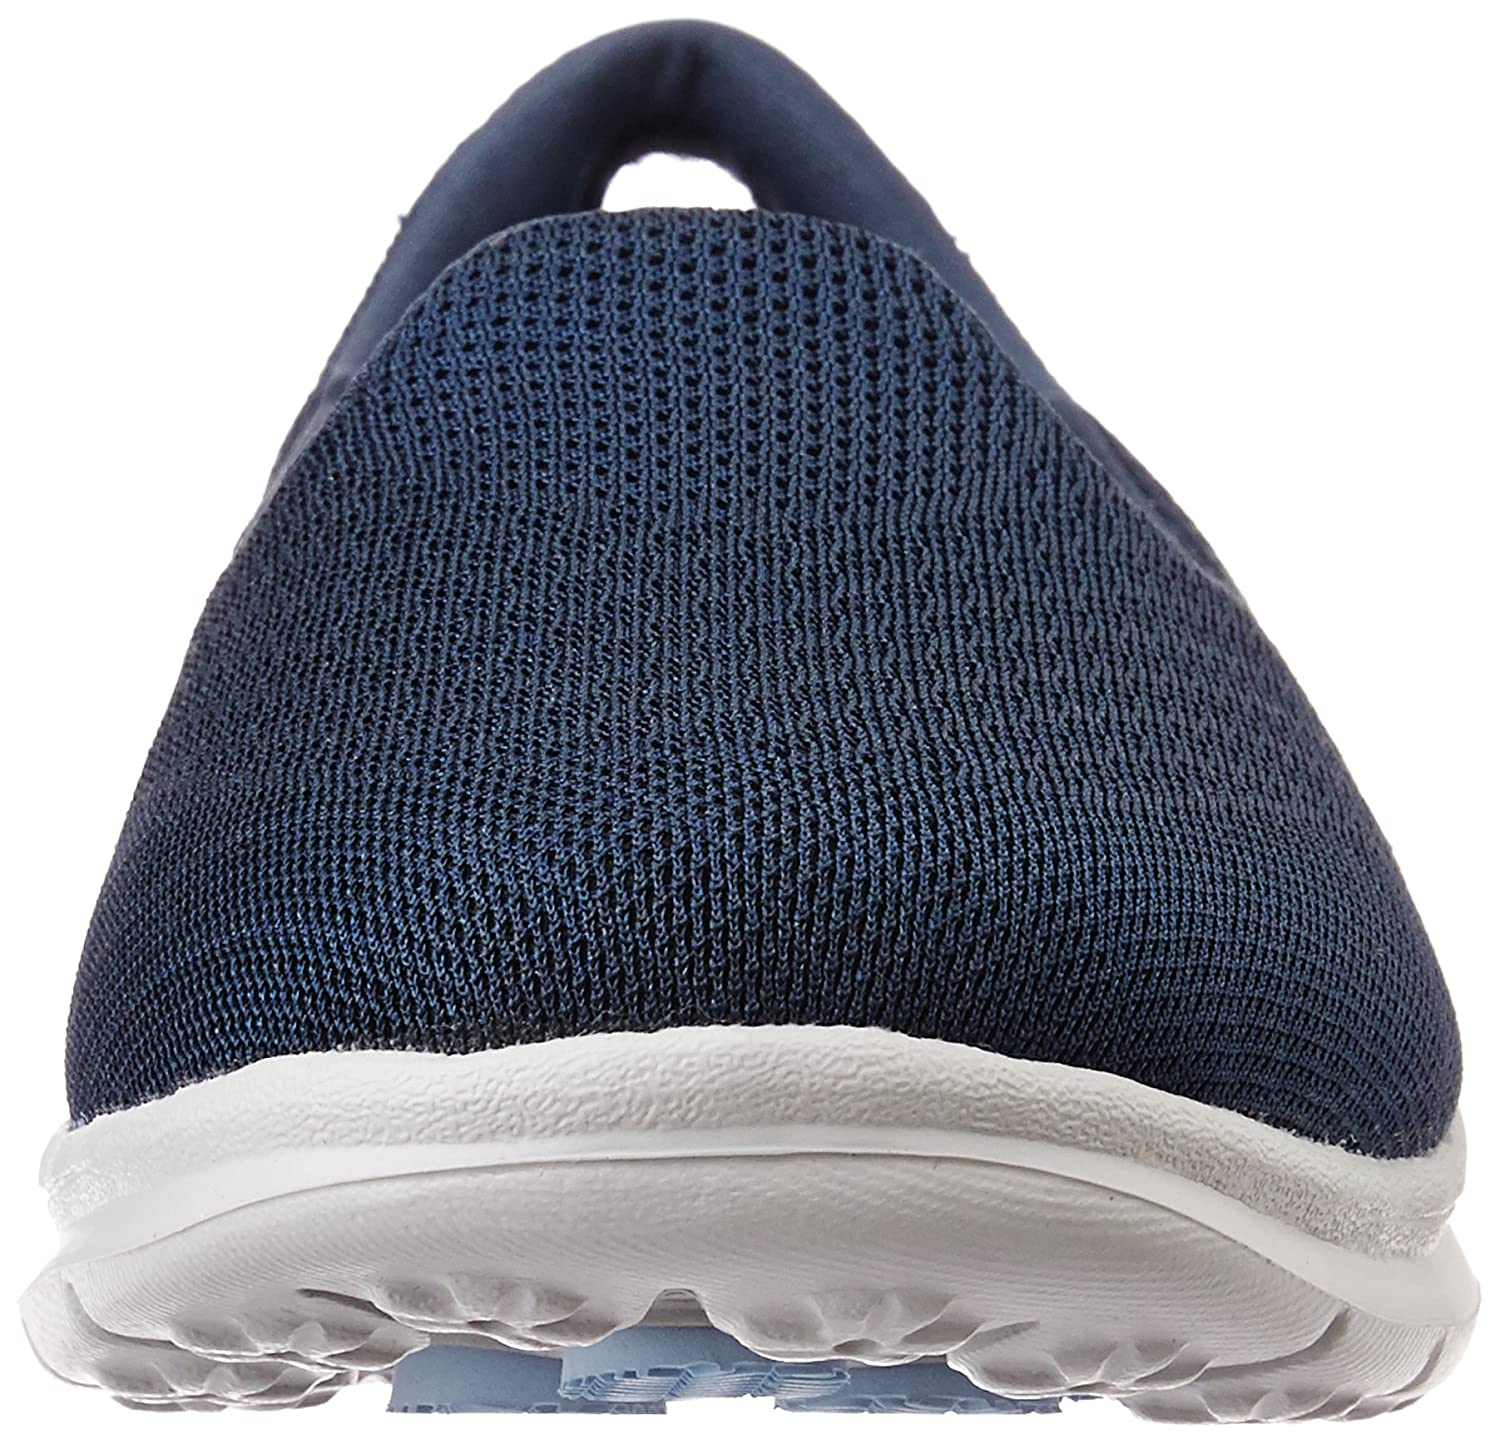 Skechers Go Step-Elated Step-Elated Go Damen Sneaker Slipper Schwarz Navy Blau a7623a